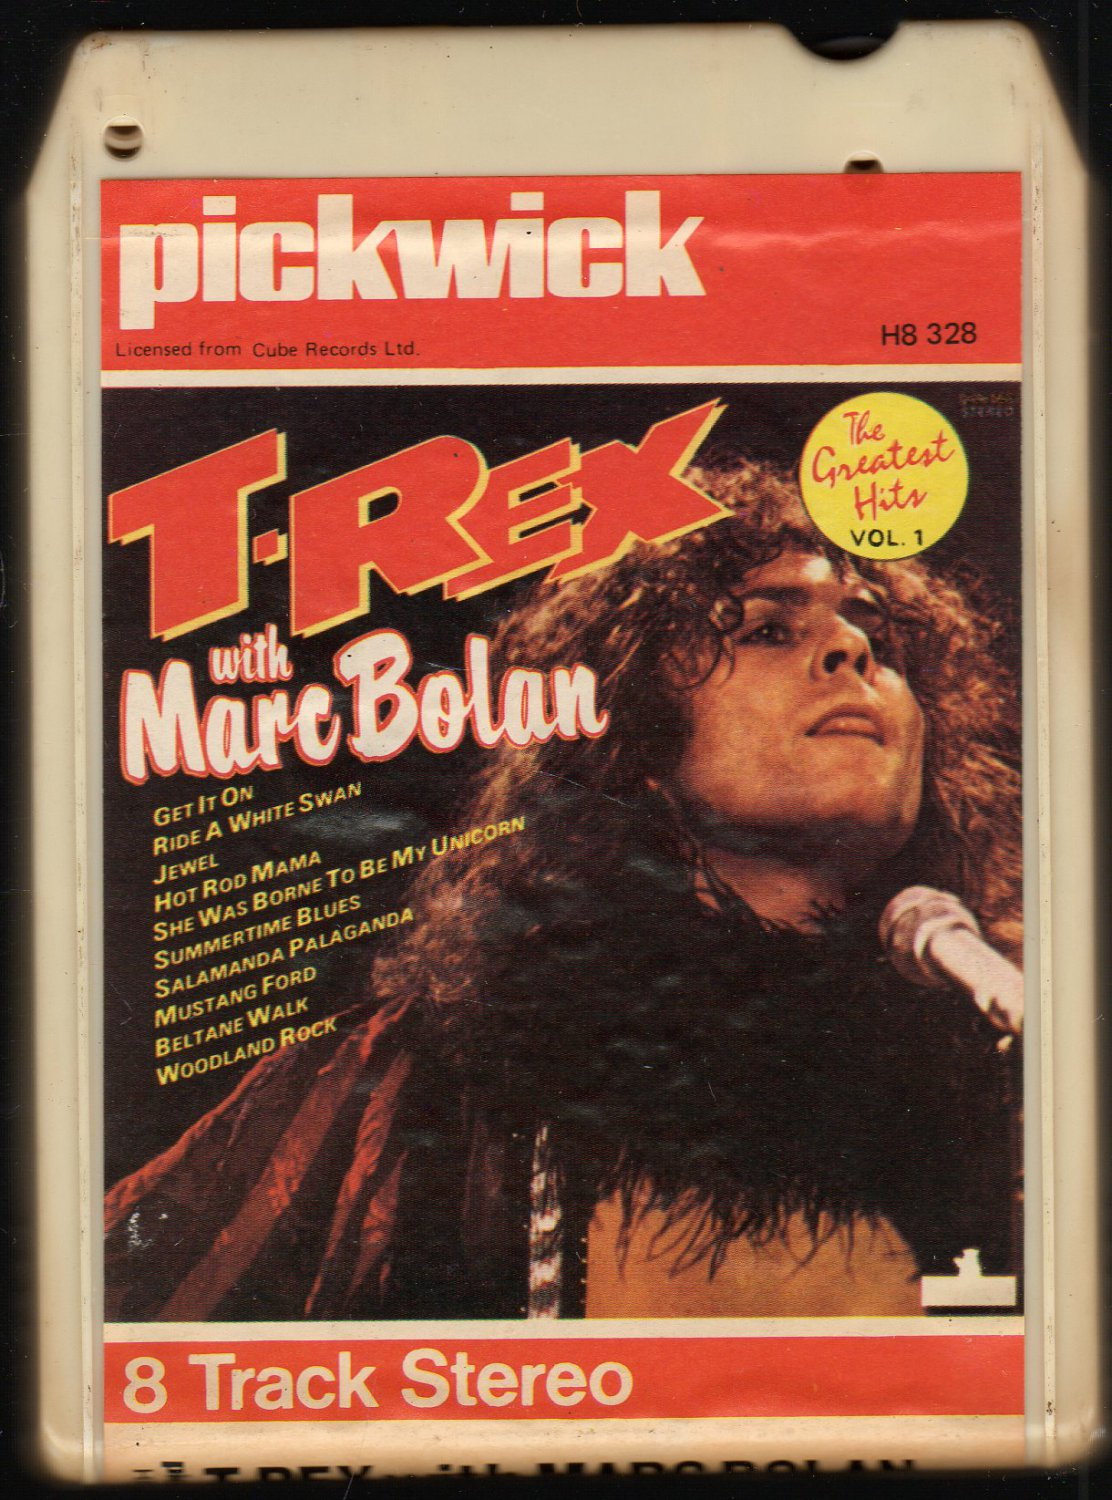 T-REX with Marc Bolan - The Greatest Hits Vol 1 PICKWICK 8-track tape